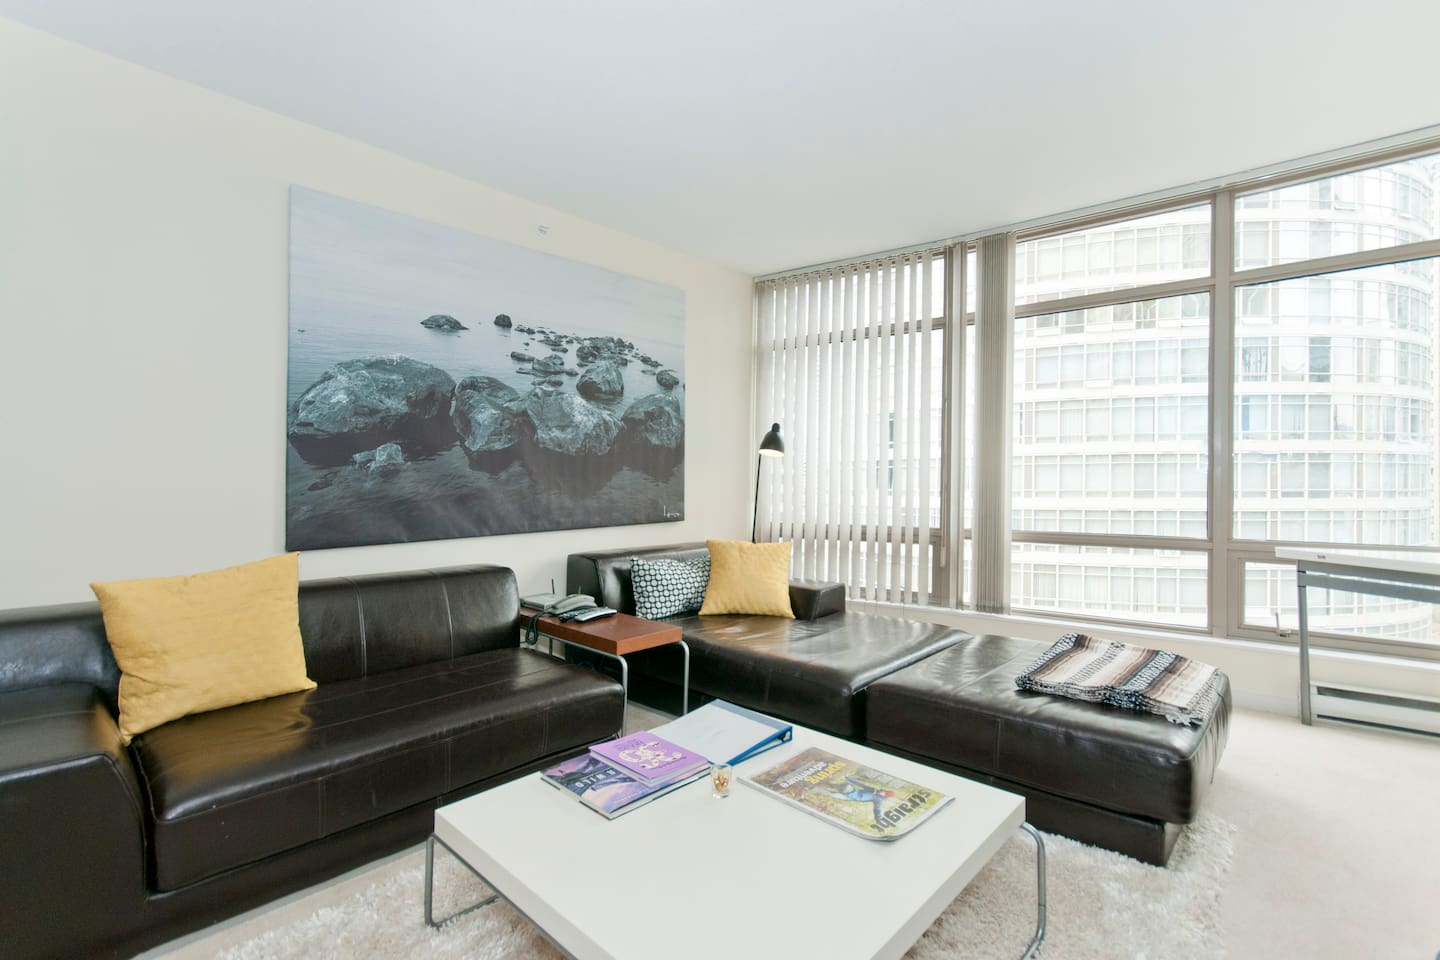 2BD/2BA, West End Apt. with a View